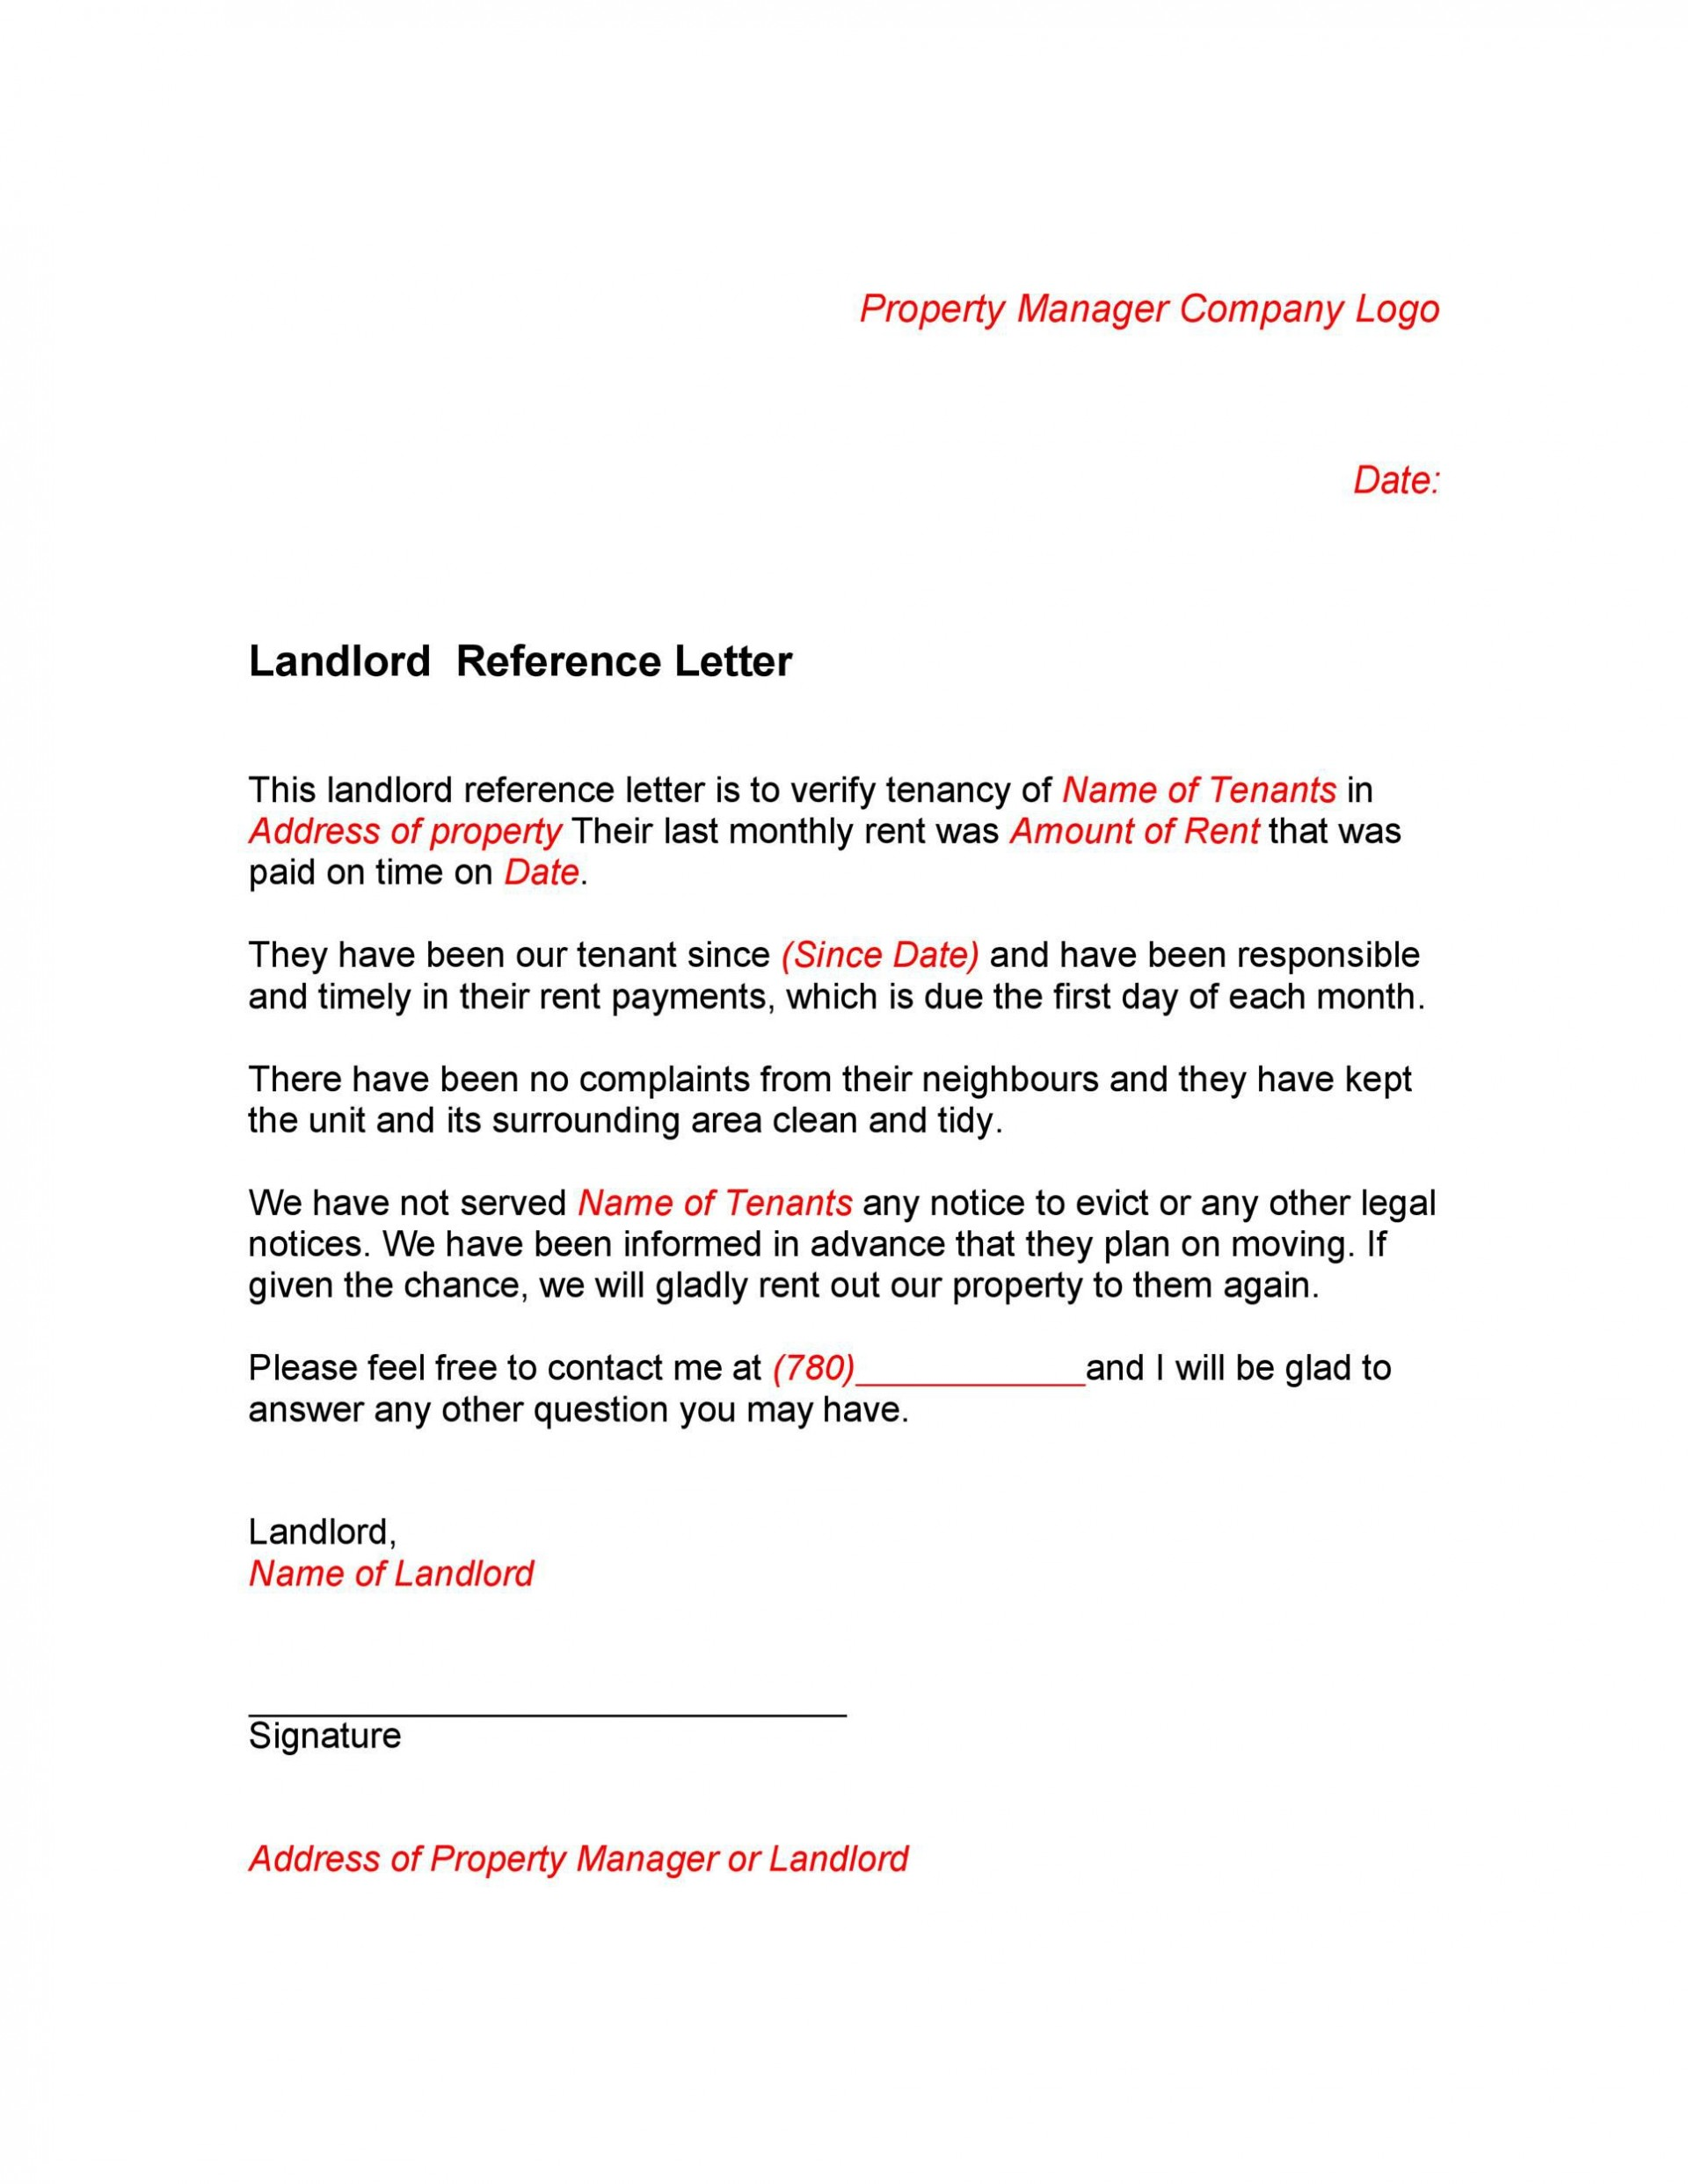 005 Staggering Free Reference Letter Template For Landlord Design  Rental1920